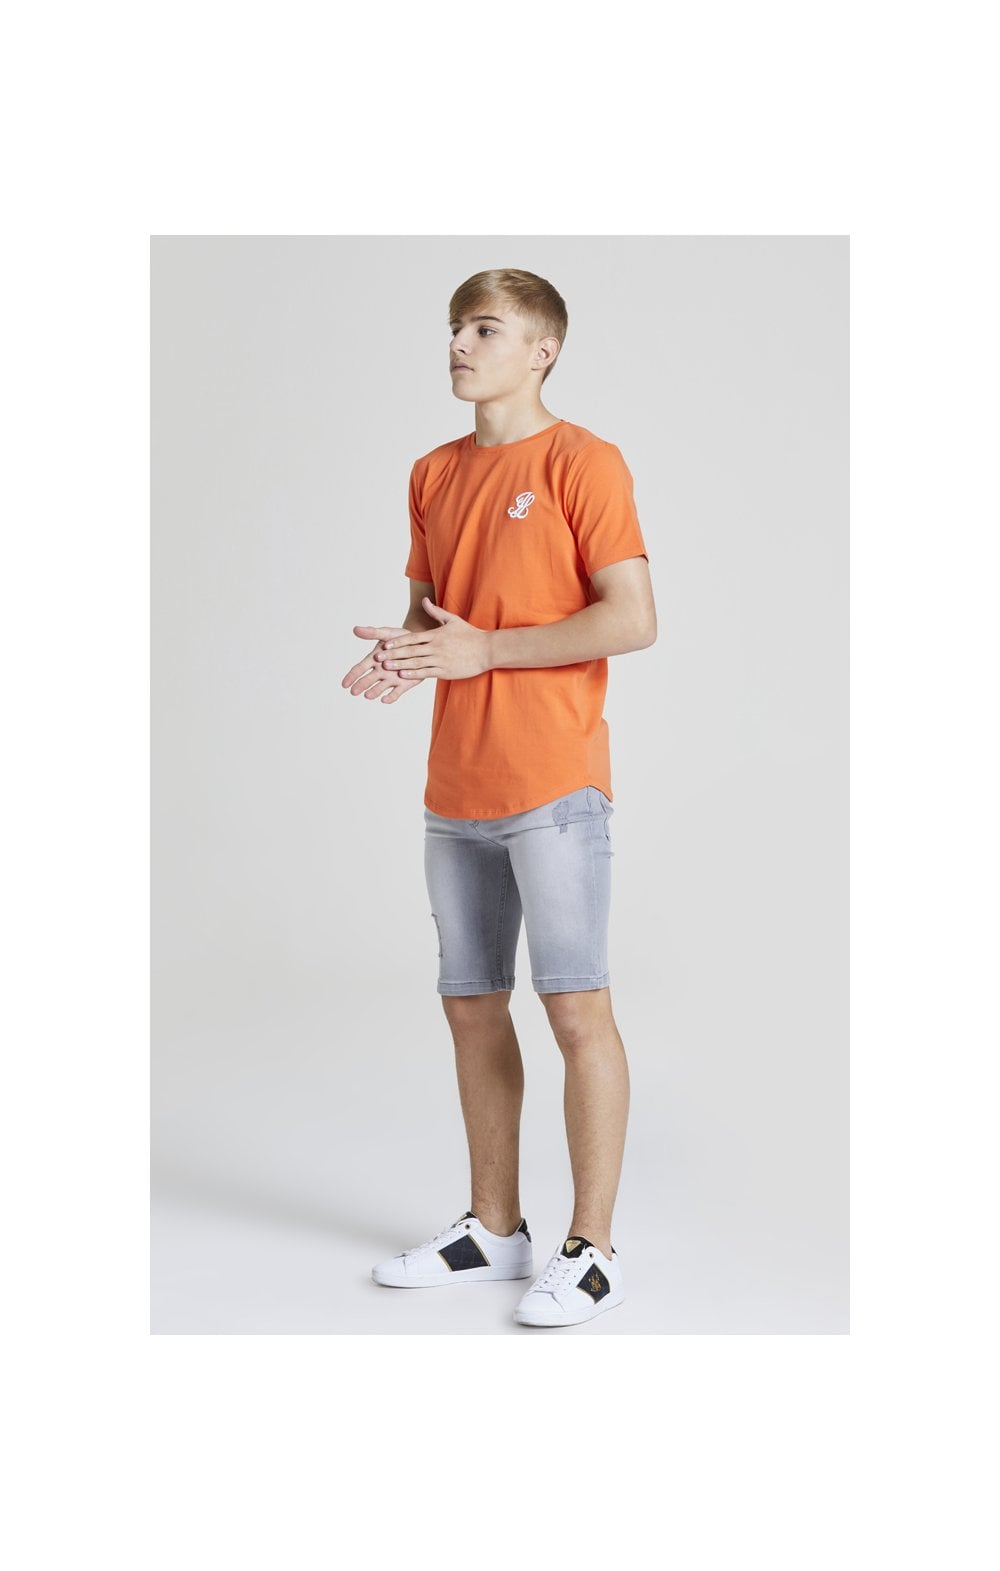 Illusive London Core Tee - Orange (4)